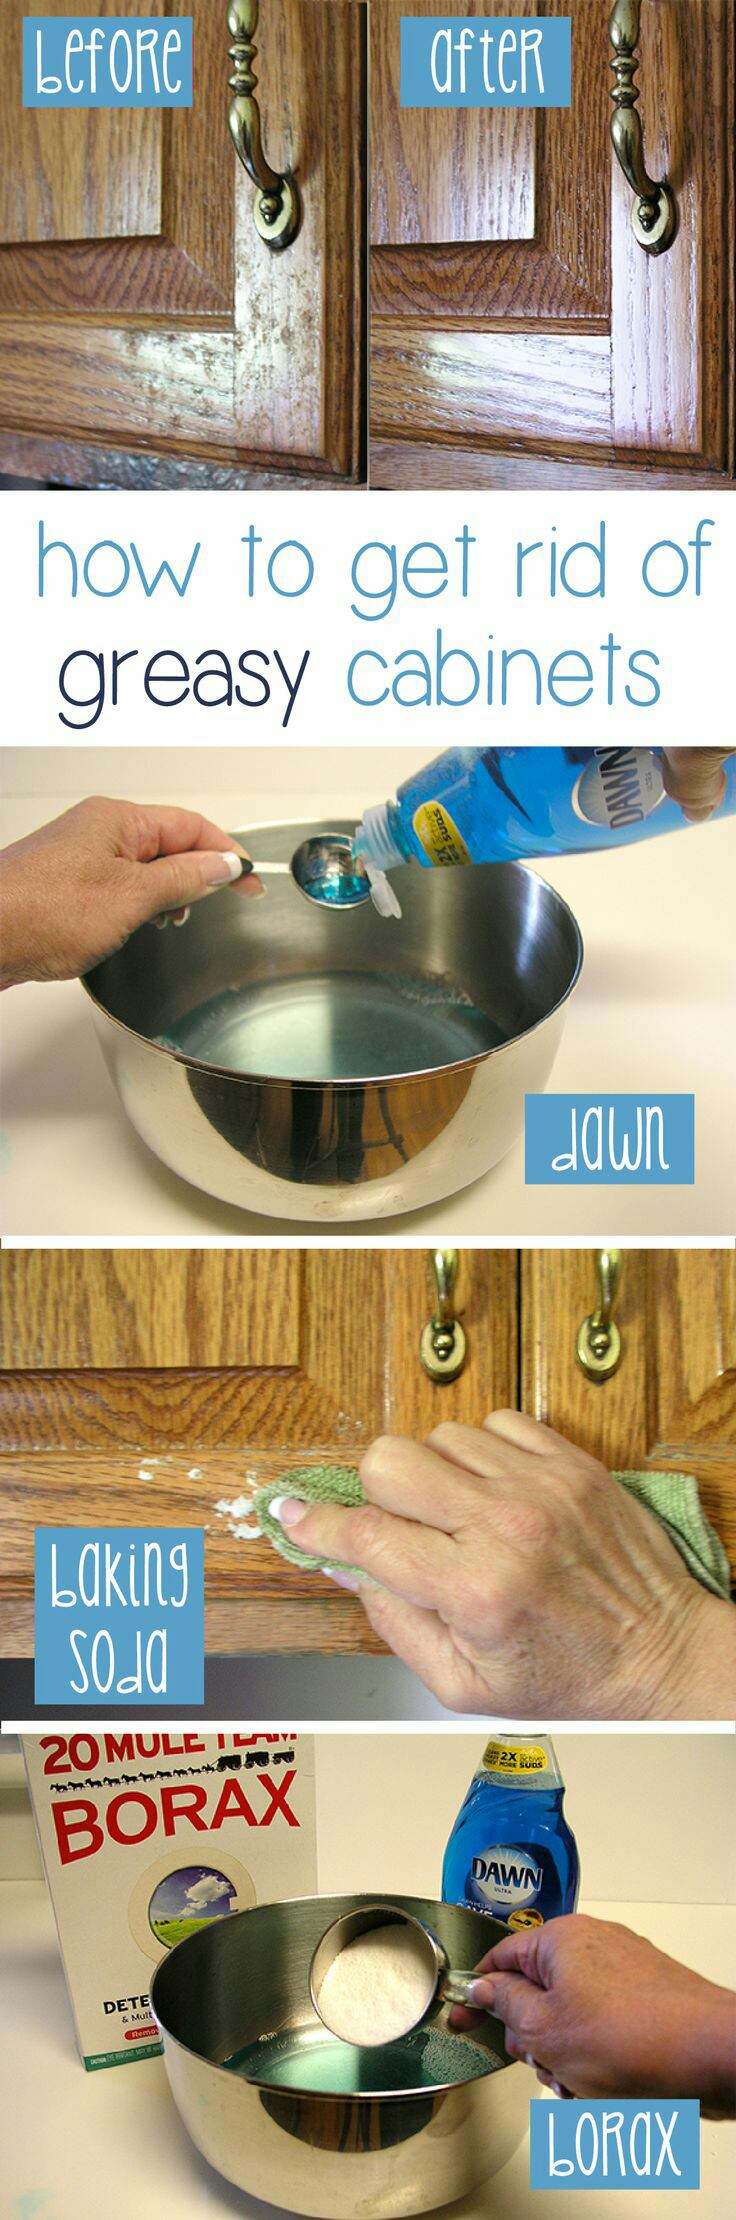 how do you clean kitchen cabinets how to clean grease from kitchen cabinet doors cleaning 8437